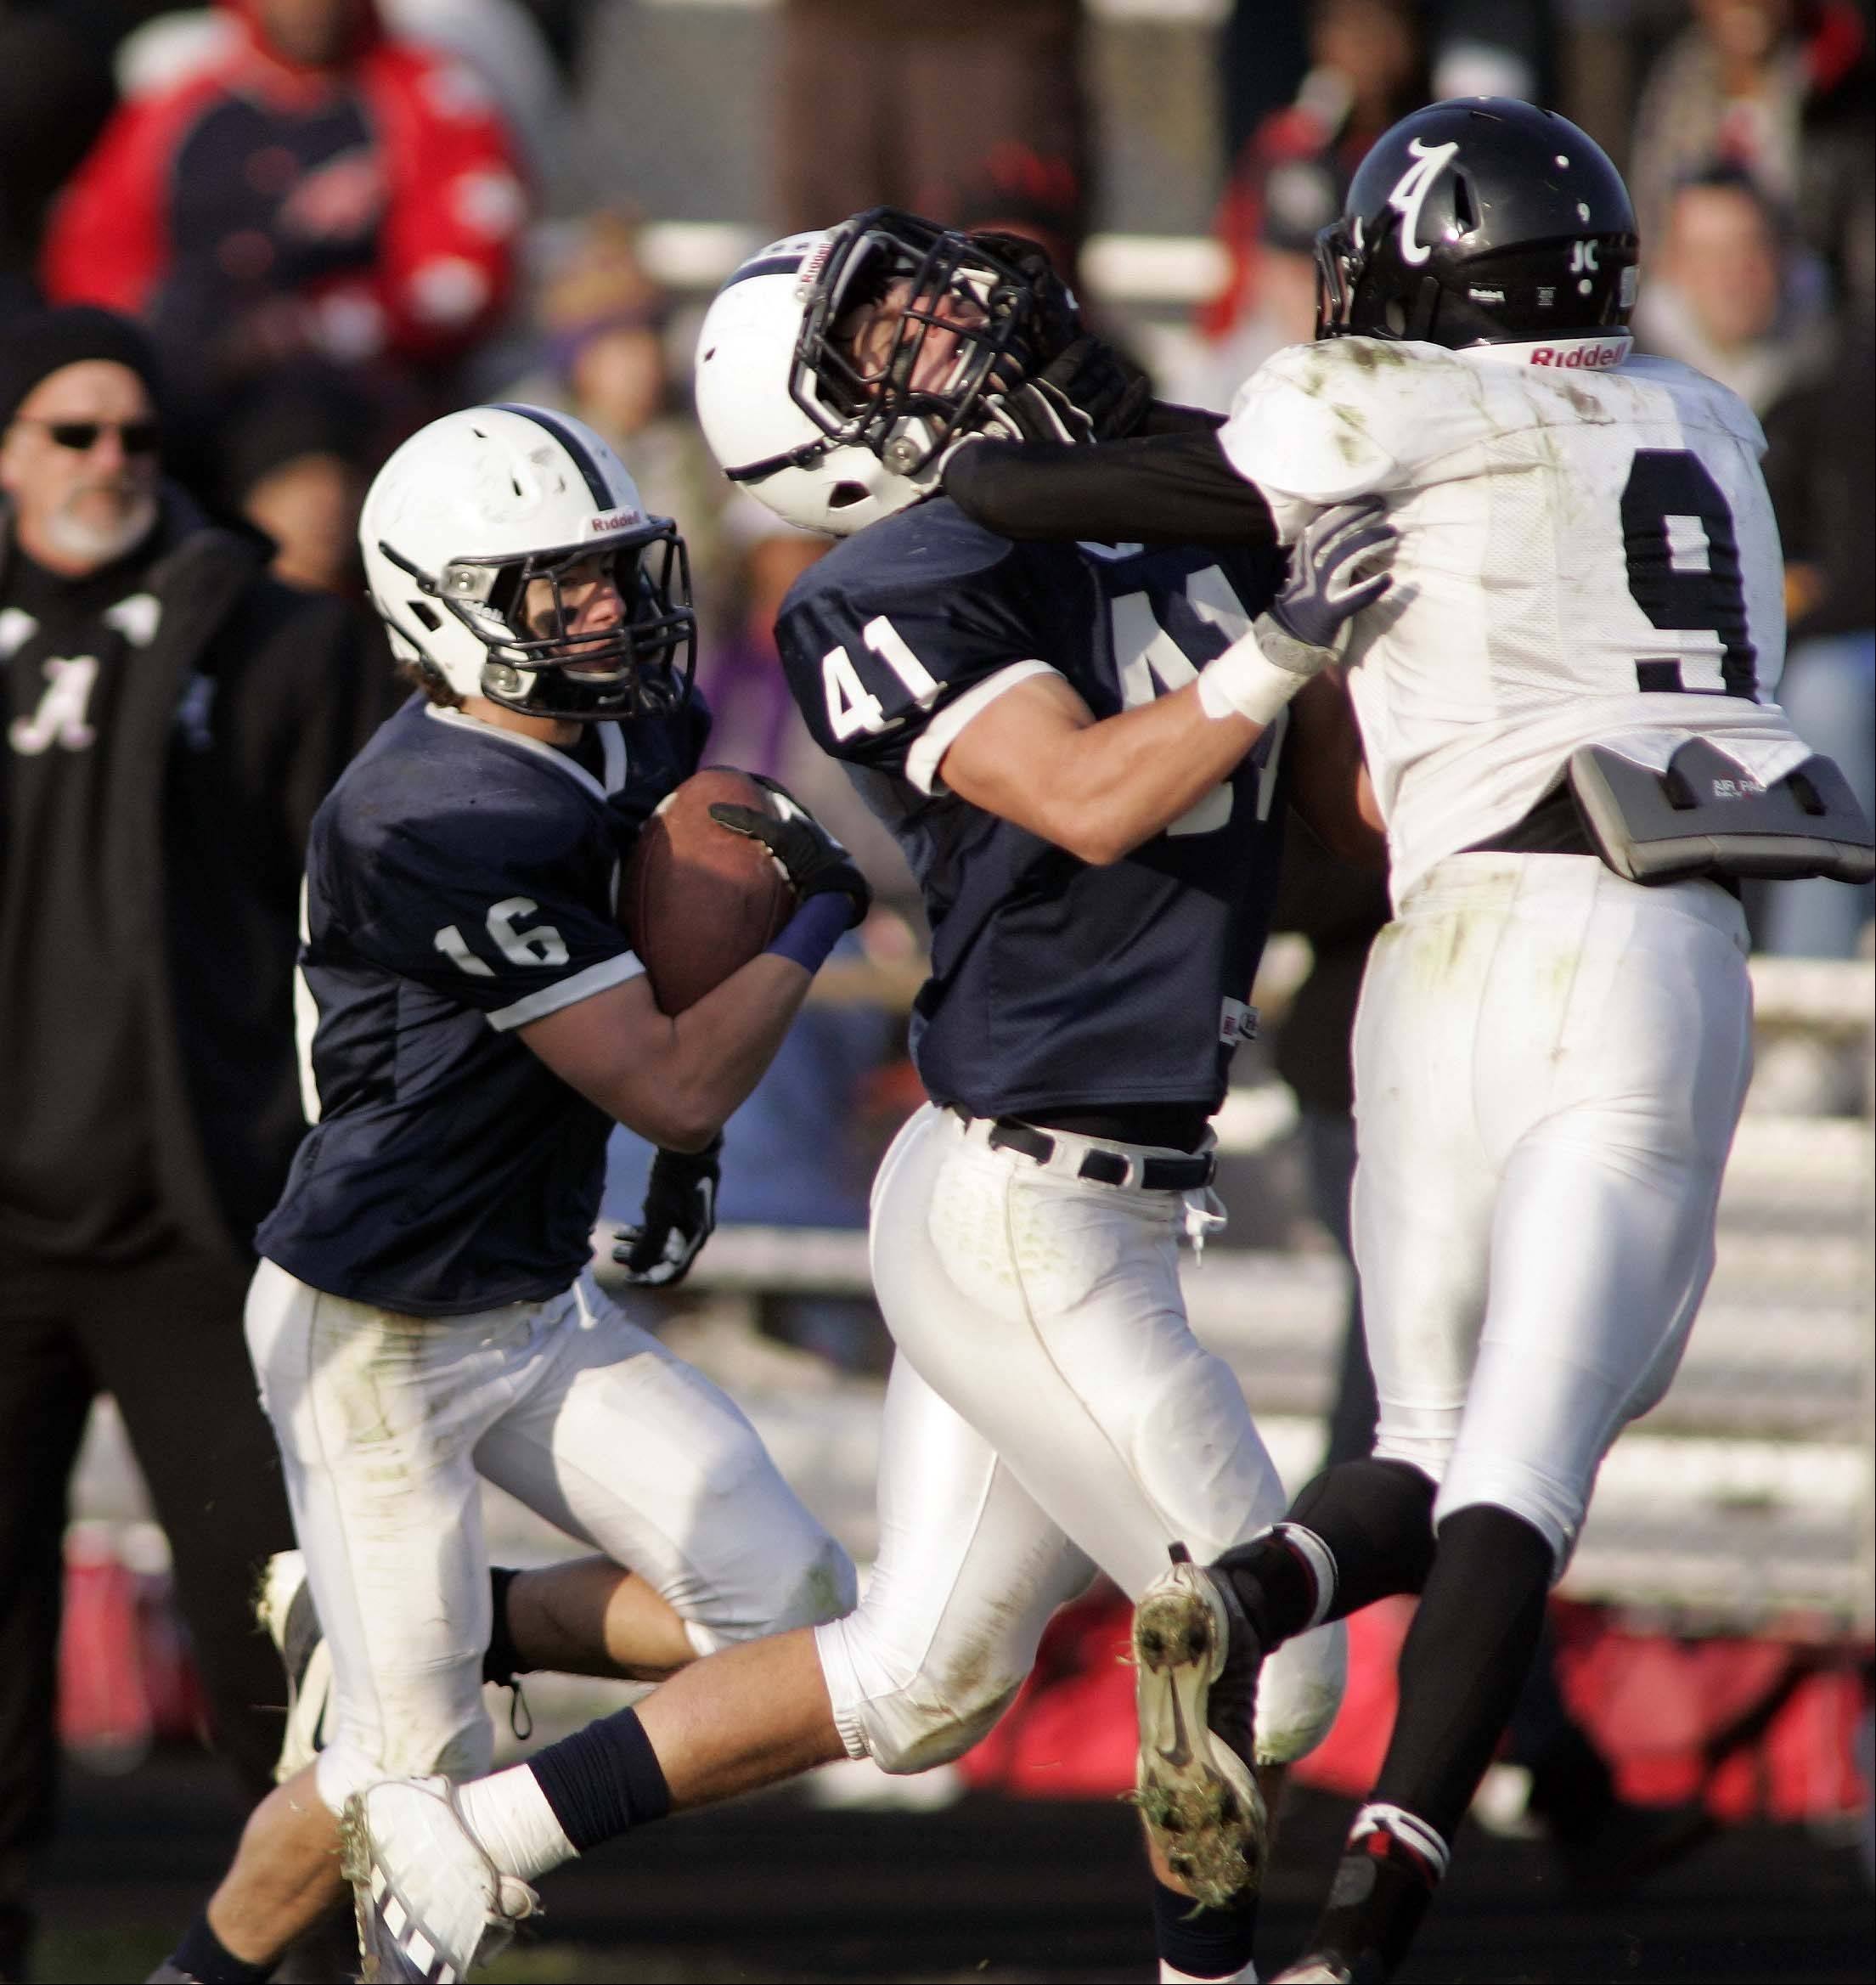 Cary-Grove�s Zach Marszal (41) puts a block on Rockford Auburn�s Corey Jefferson (9) to give Cary-Grove�s Kaene Connington some running room during the first round of the Class 6A playoffs. Cary-Grove hosts Crystal Lake Centrak Saturday at 1 p.m. in the quarterfinal round.